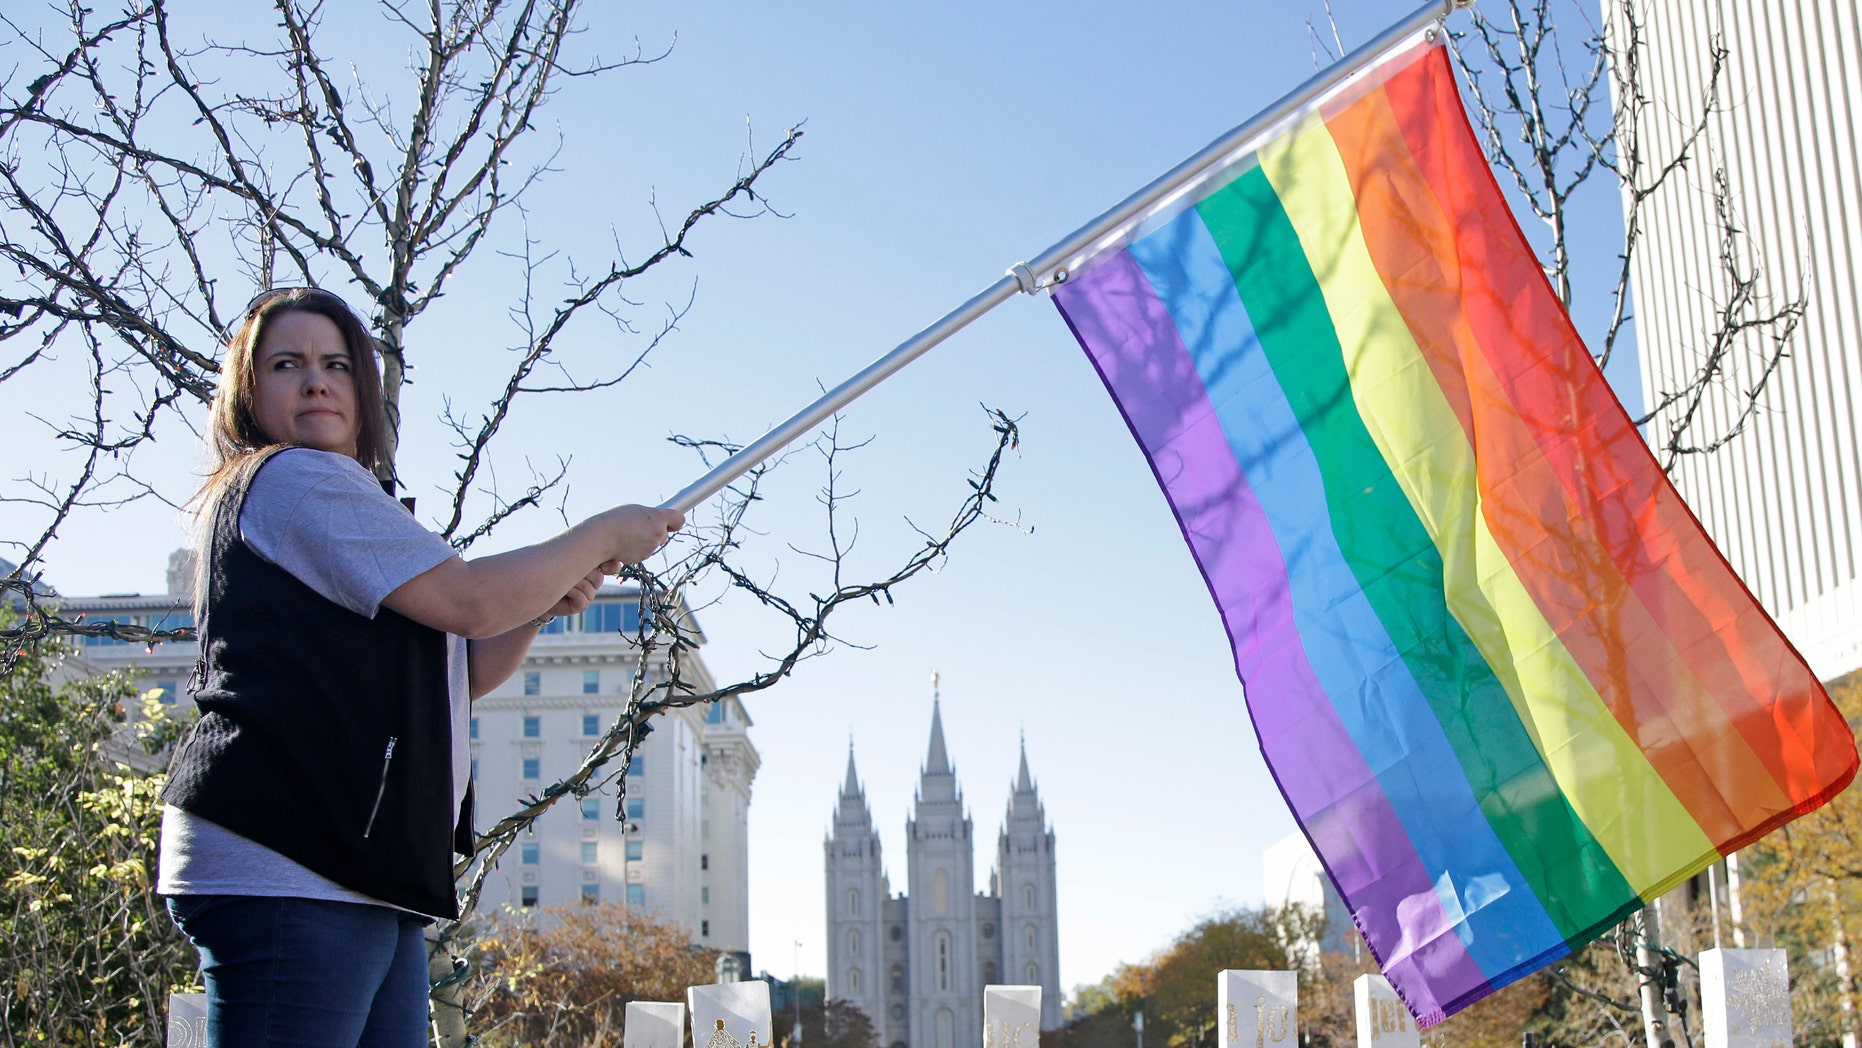 Sandy Newcomb poses with a rainbow flag as Mormons gather for a mass resignation from the Church of Jesus Christ of Latter-day Saints.